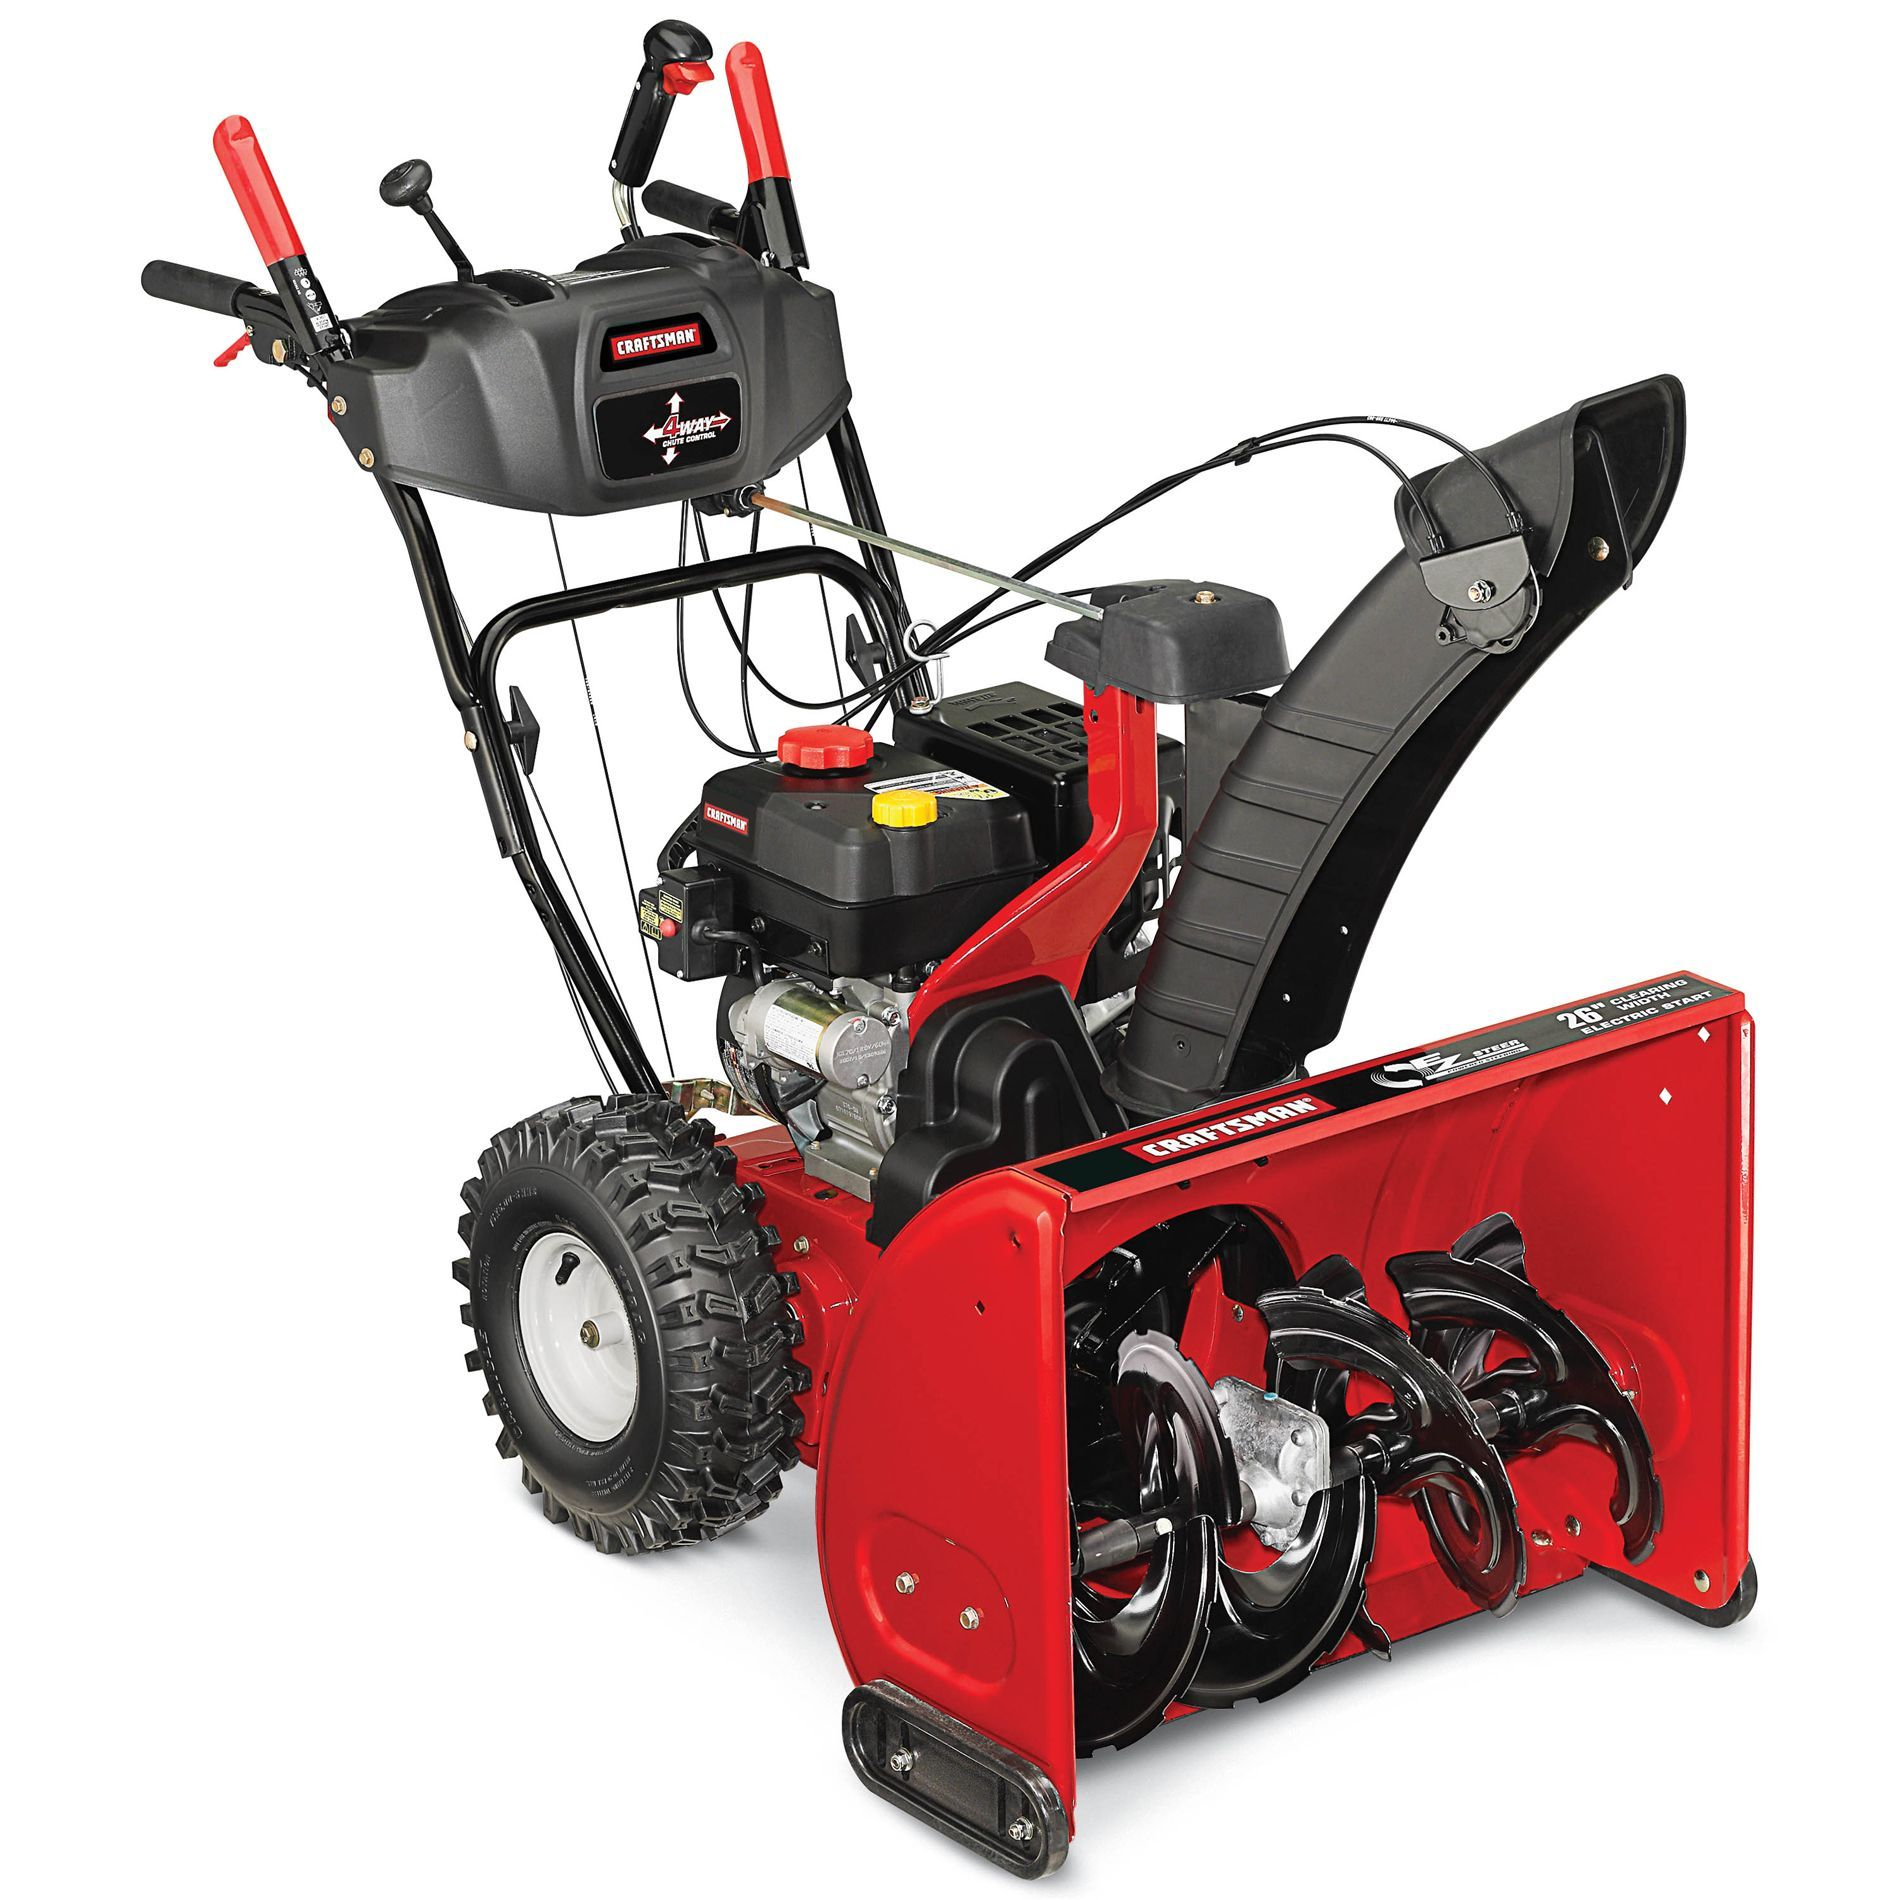 2014 Craftsman 26 In 208 Cc Model 88691 Two Stage Snow Blower Review Is This The Best Snow Blower For You Almo Snow Blower Snow Blowers Snow Removal Equipment